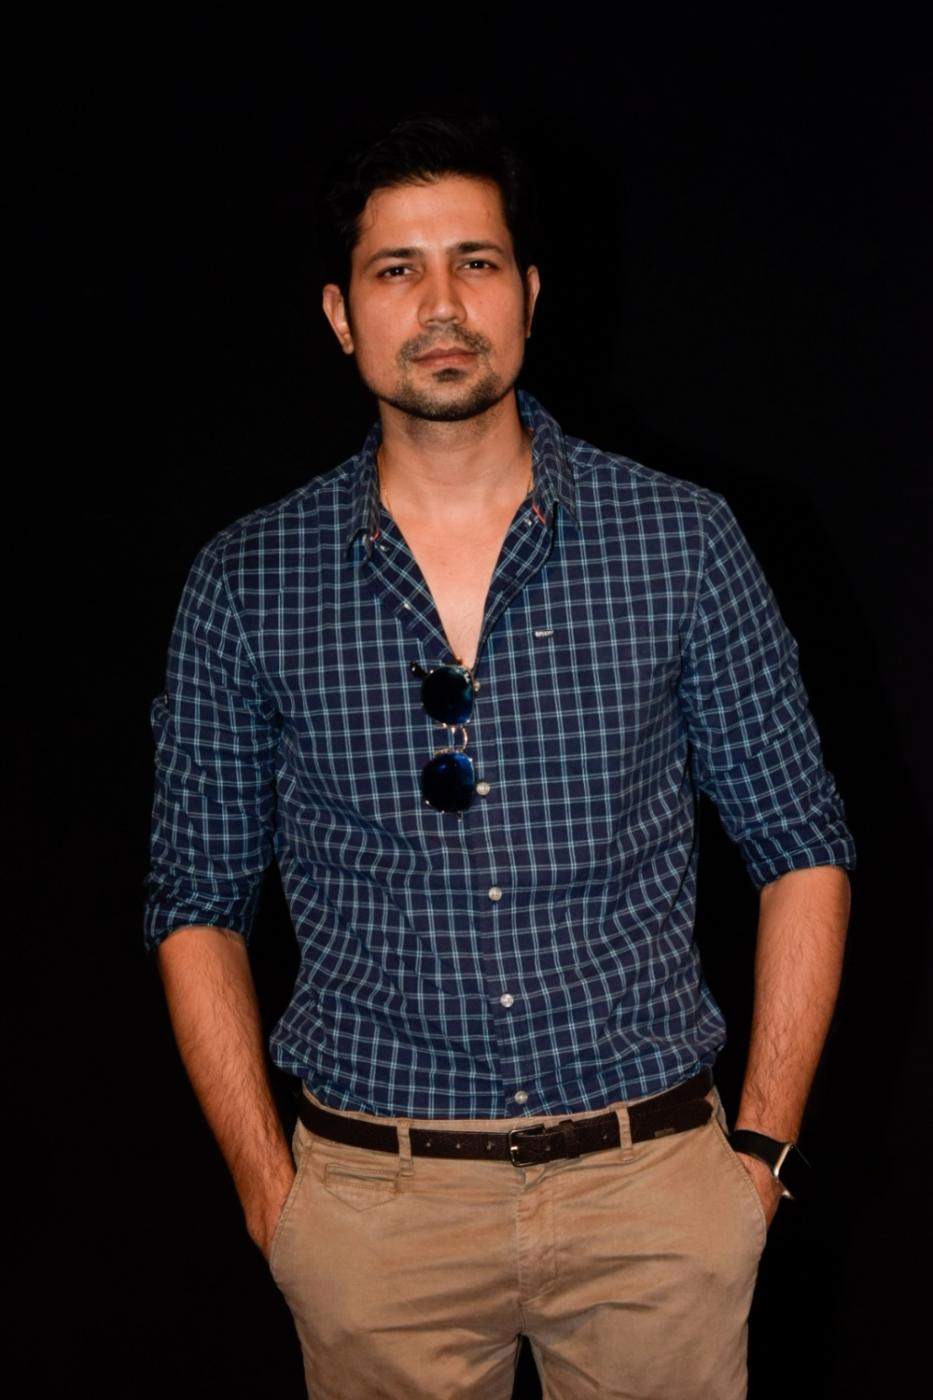 Mumbai: Actor Sumeet Vyas at the 5th edition of Indian Screenwriters Conference in Mumbai on Aug 3, 2018. (Photo: IANS) by .